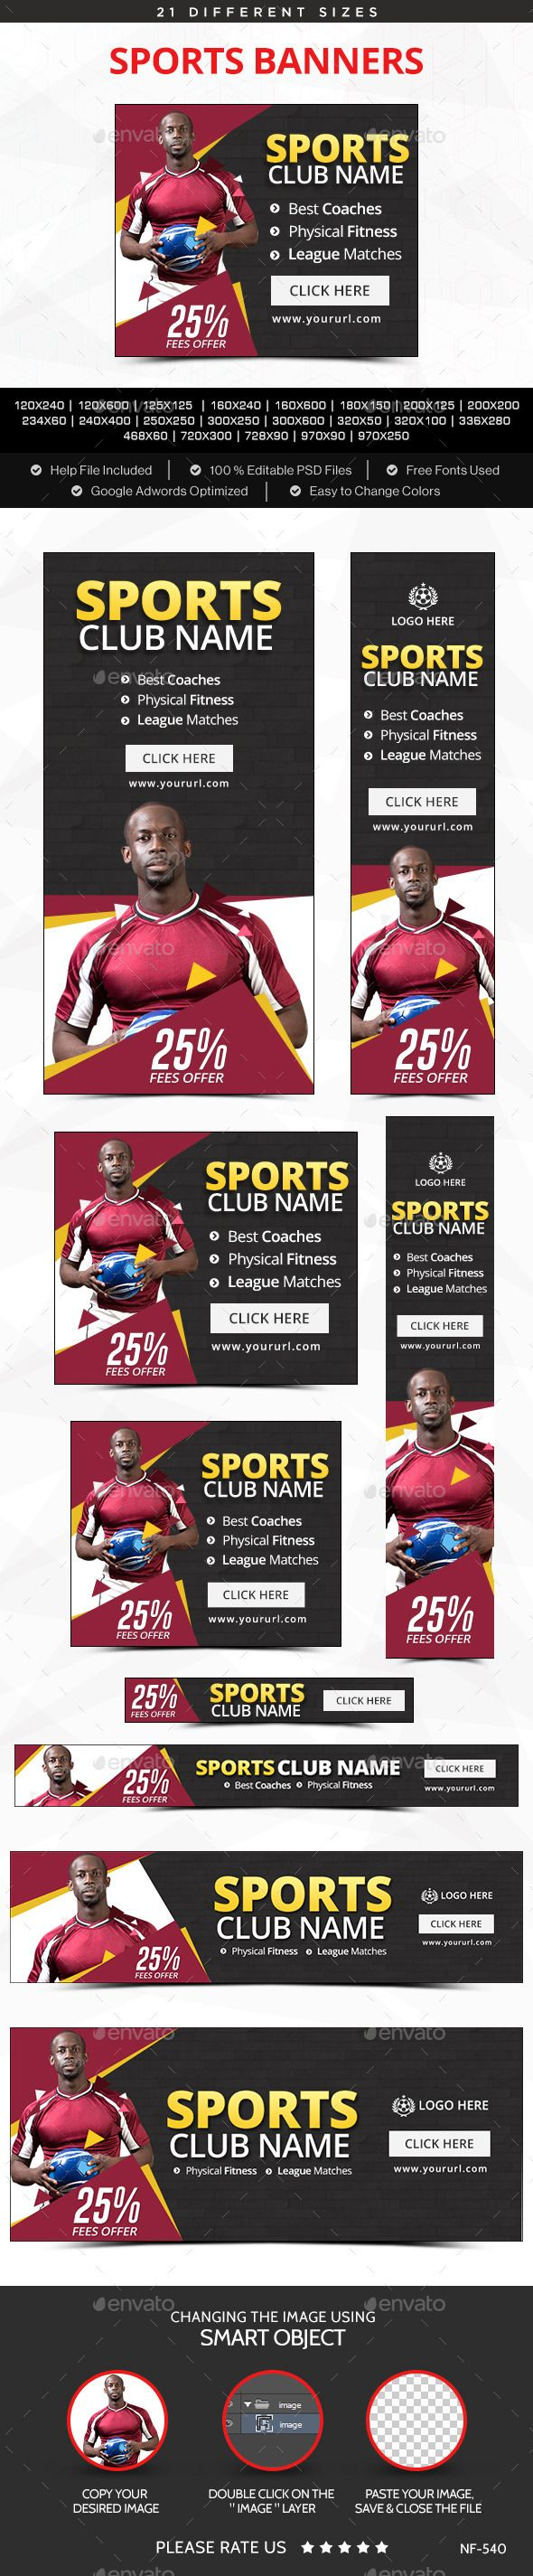 Sports Banners Template #design Download: http://graphicriver.net/item/sports-banners/12297875?ref=ksioks